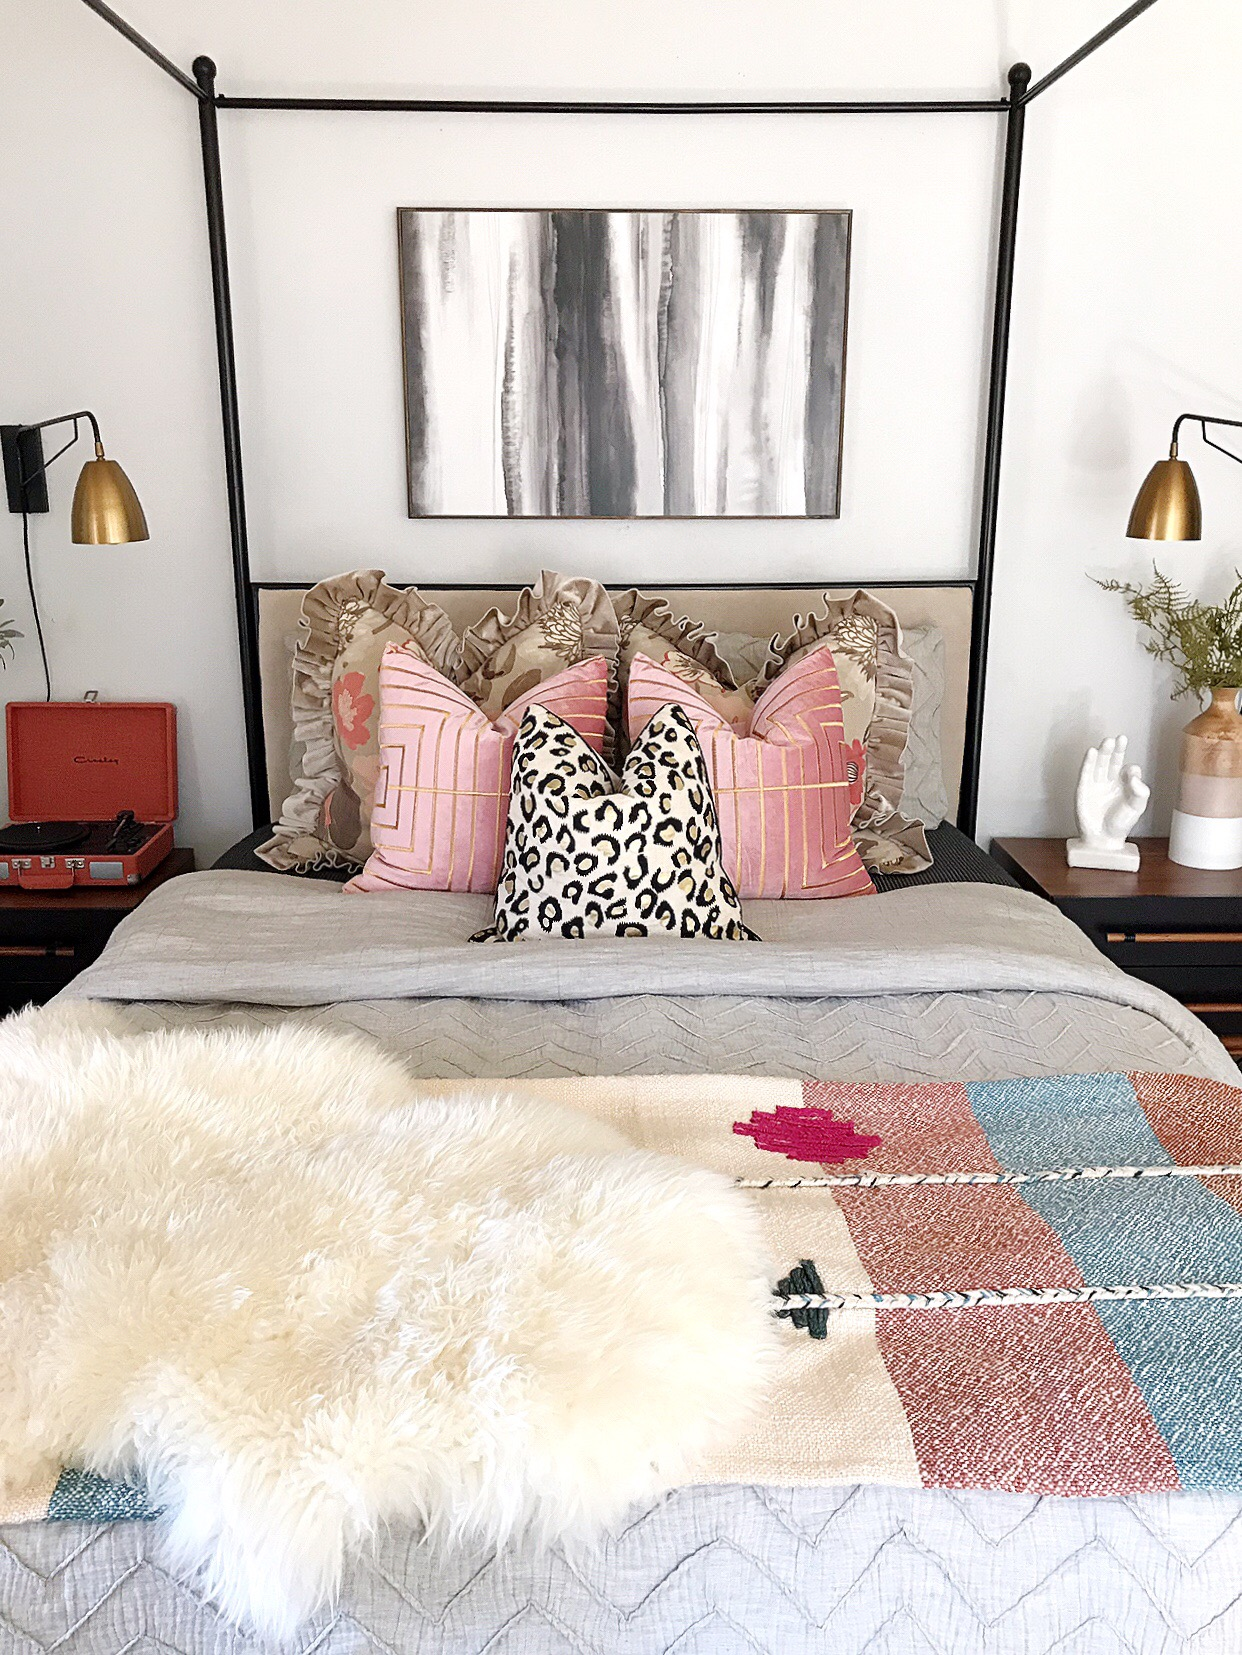 How to give your home a quick affordable refresh